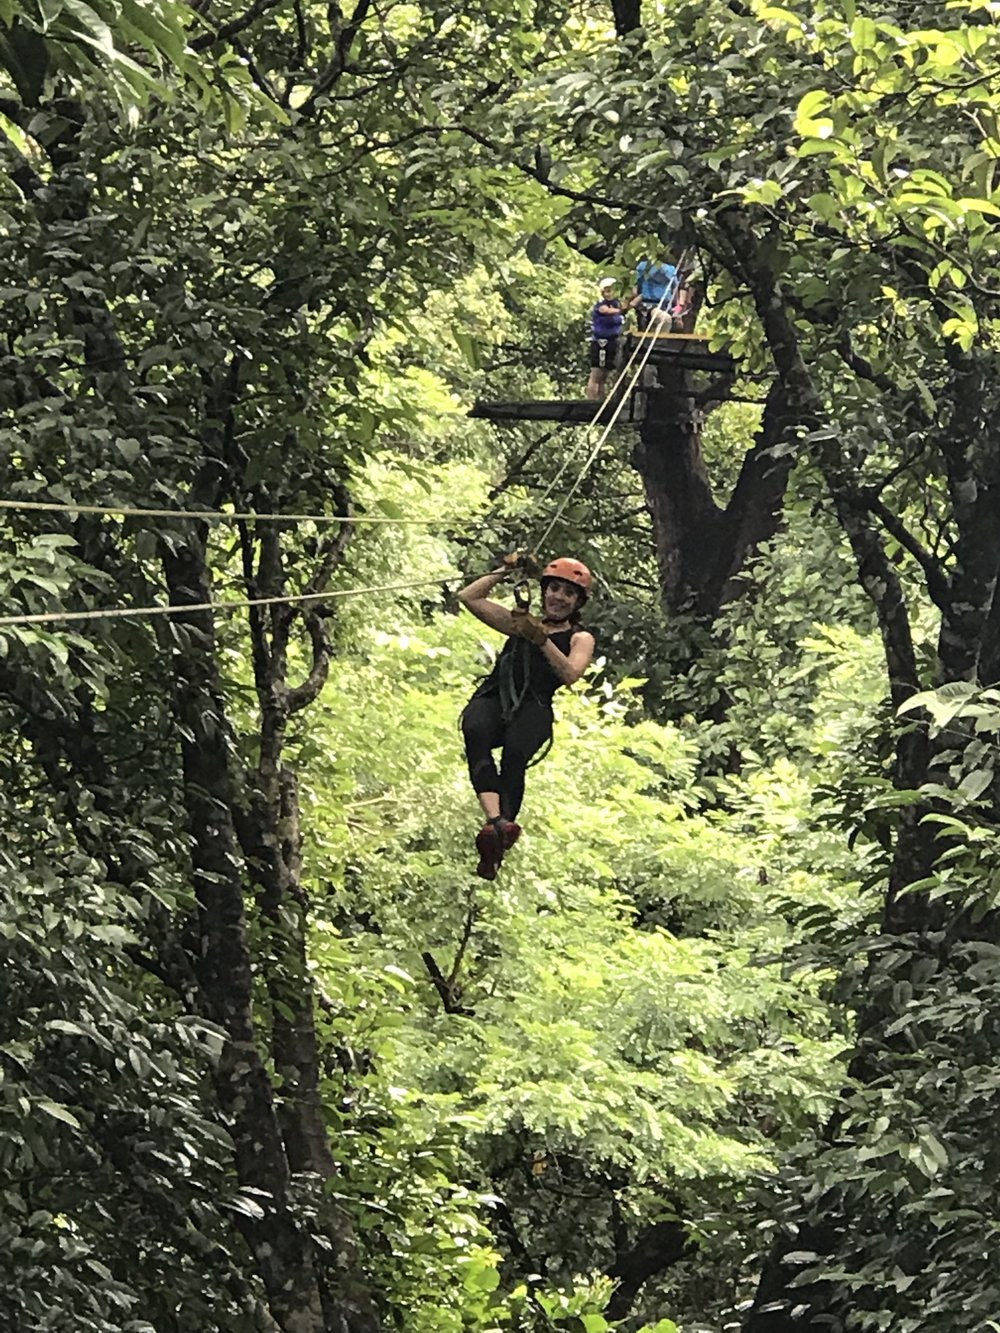 Zip-lining at the Congo Trails Adventure Center